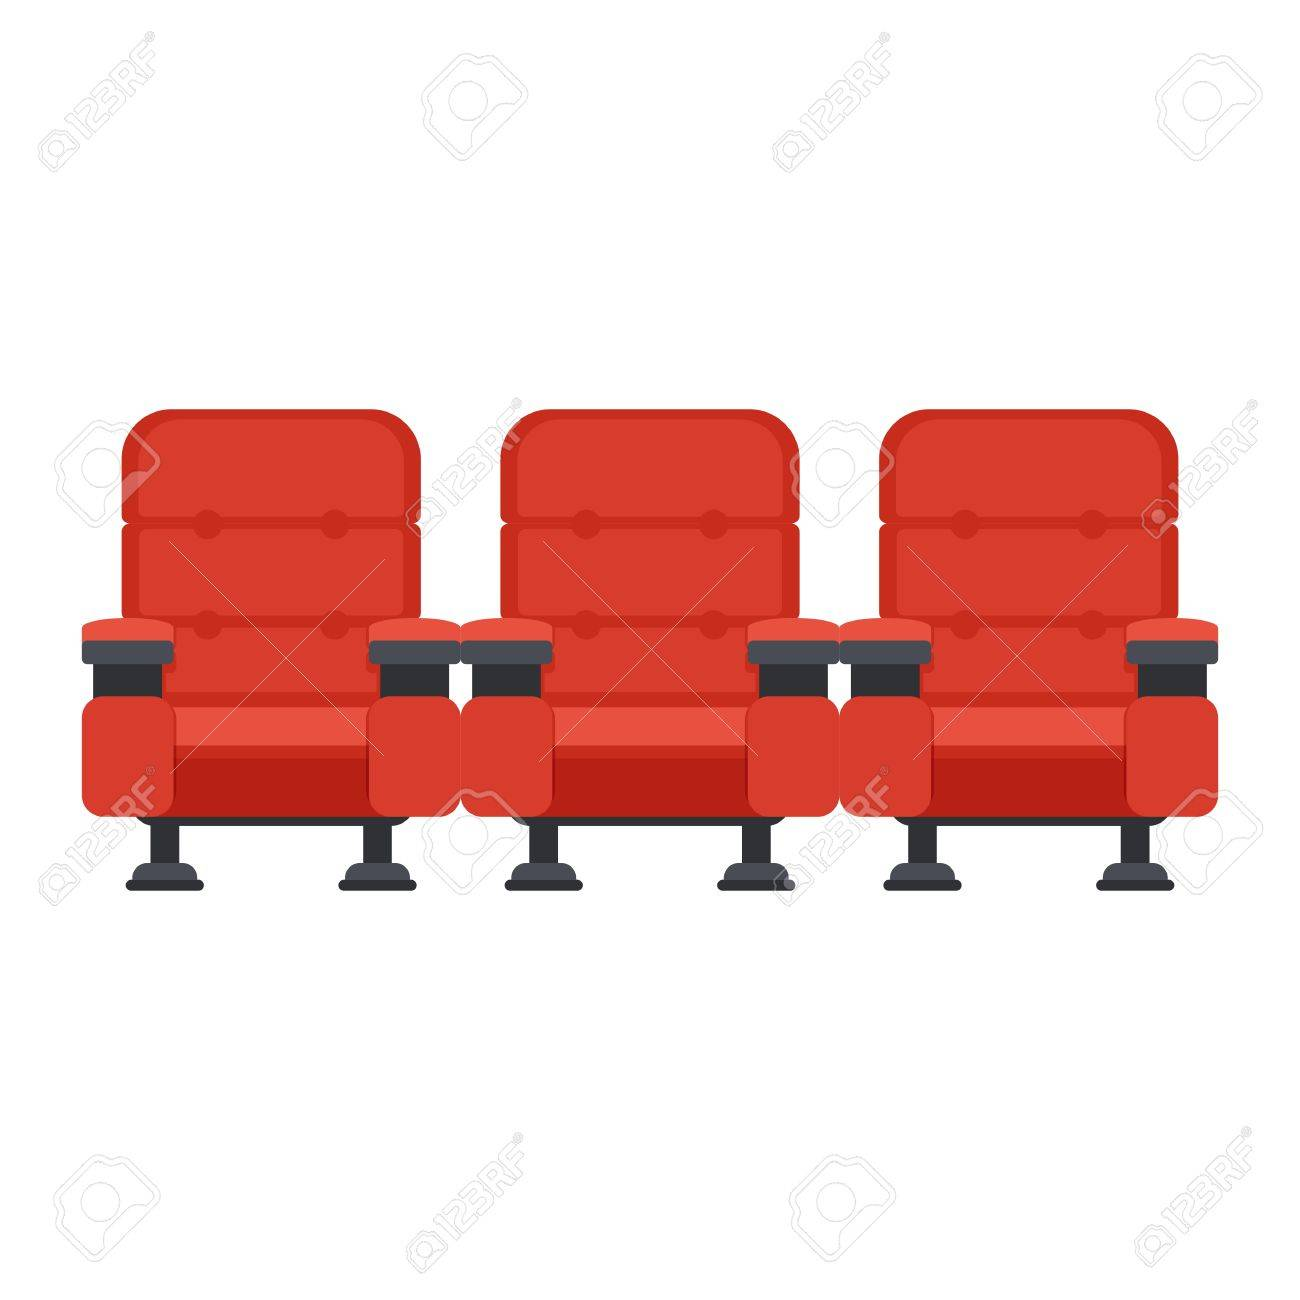 Auditorium And Seats In A Movie Theater Flat Vector Cartoon Royalty Free Cliparts Vectors And Stock Illustration Image 68696951